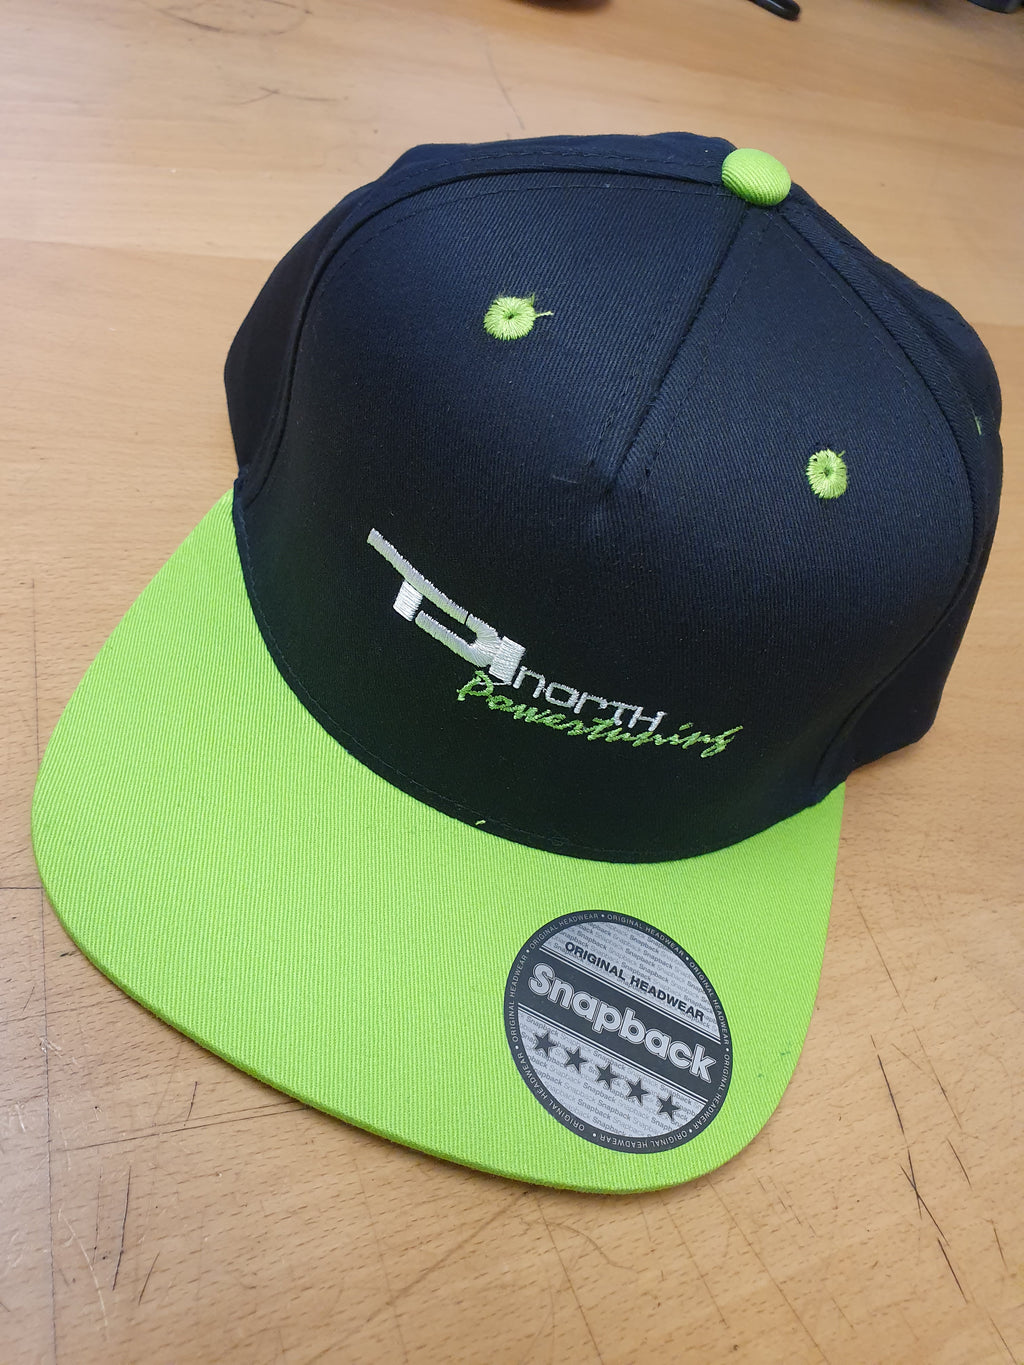 TDi North Hats - Baseball Cap/Snapback. - TDi North